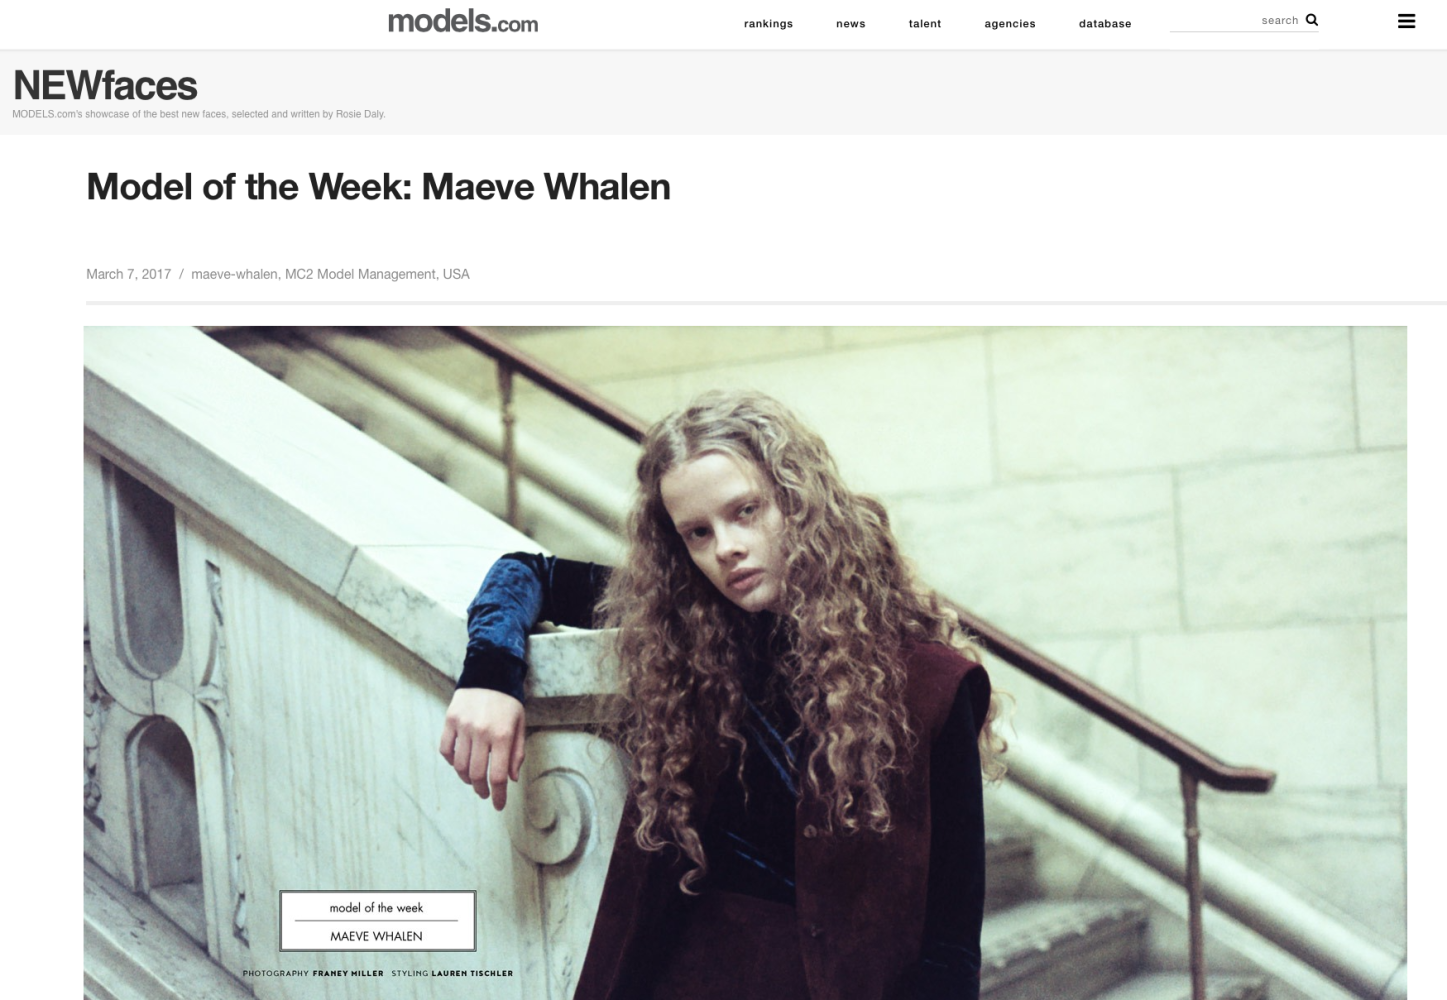 Maeve Whalen featured at Models.com NEWfaces